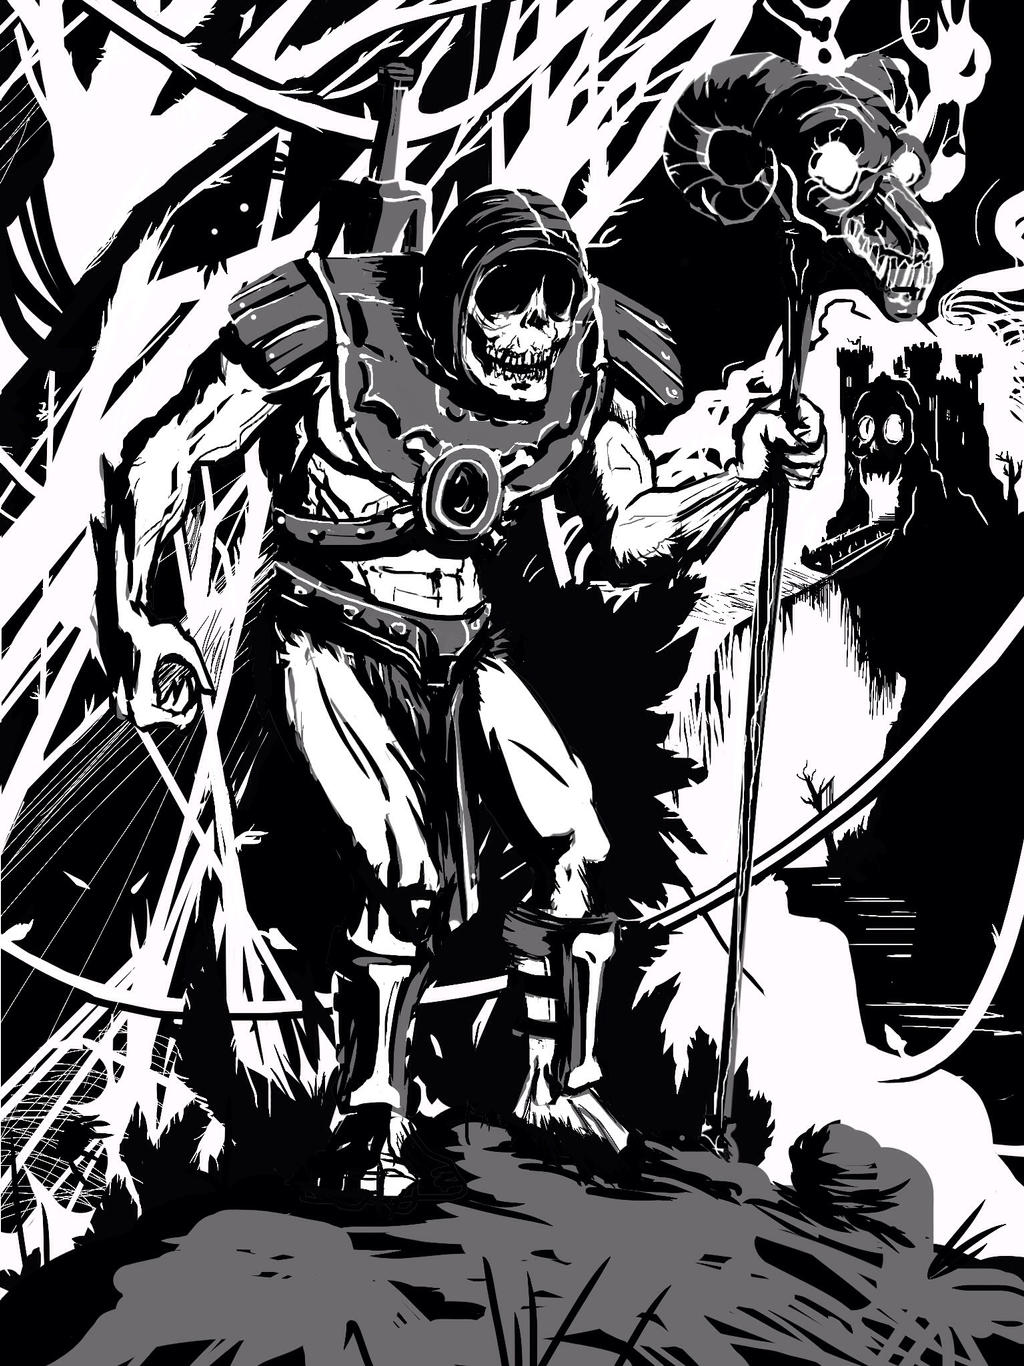 Skeletor Creeping by Bat-Dan